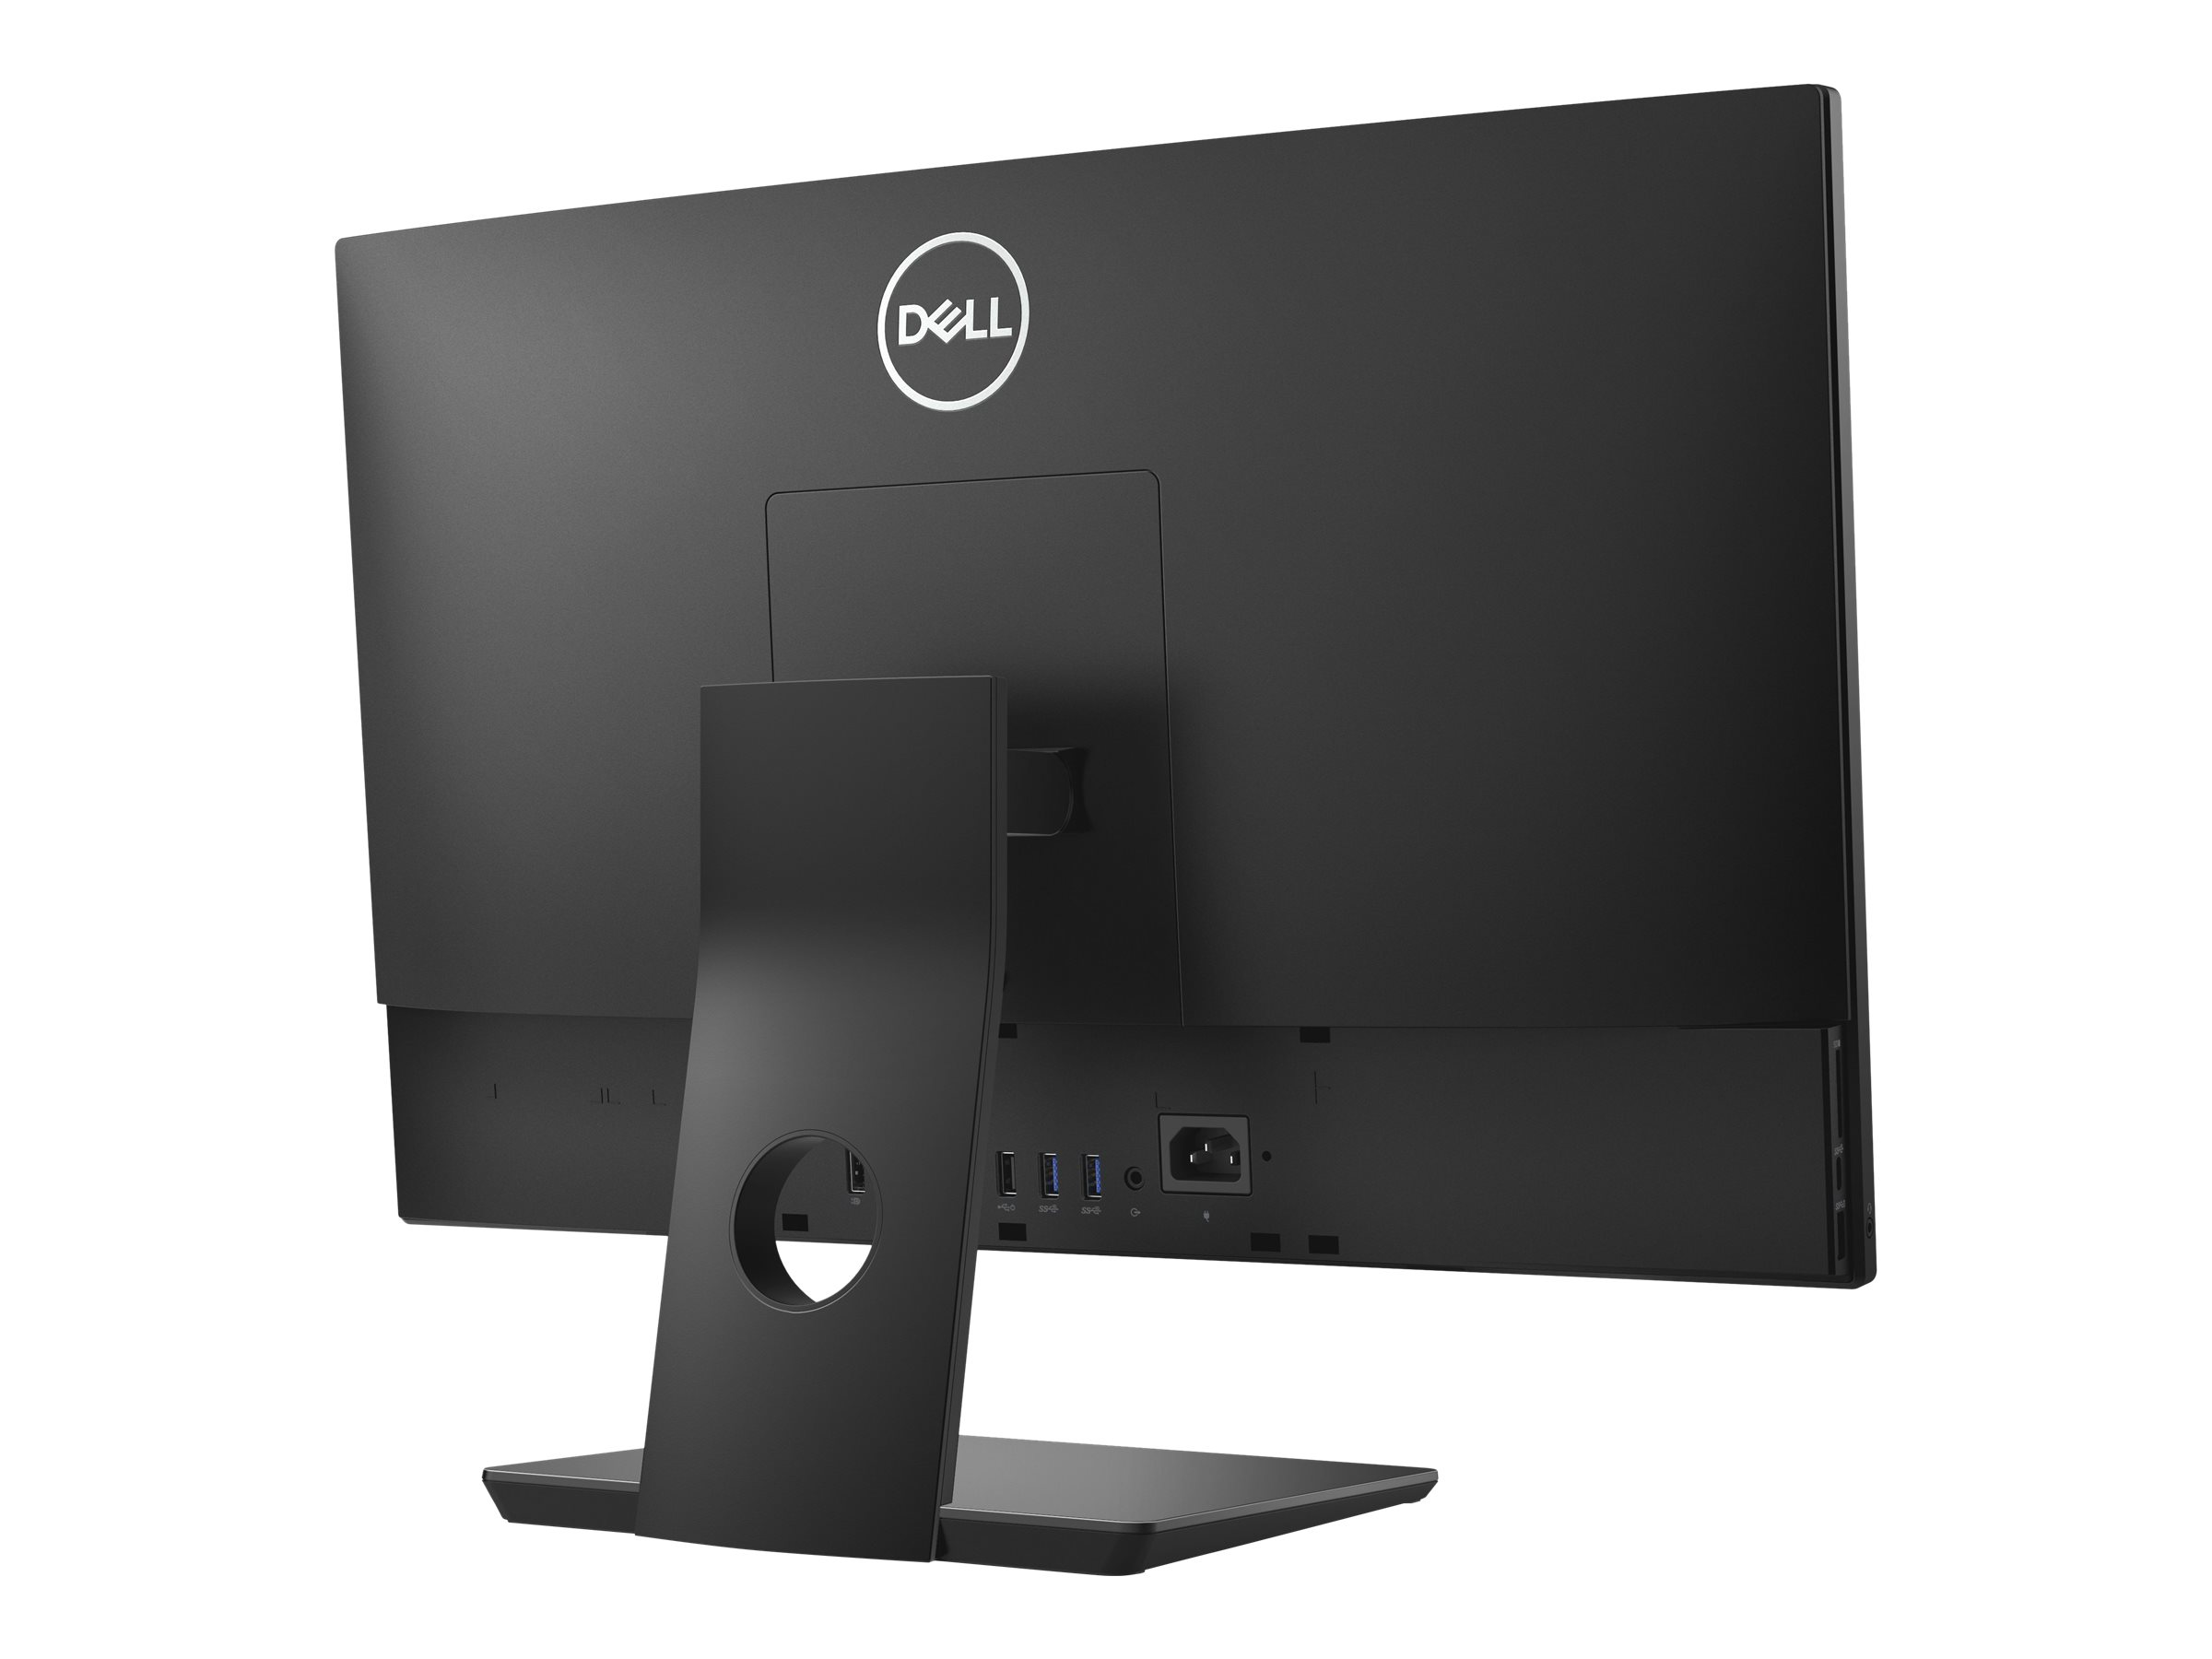 Dell OptiPlex 5480 All In One - all-in-one - Core i5 10500T 2.3 GHz - 8 GB - HDD 500 GB - LED 23.8